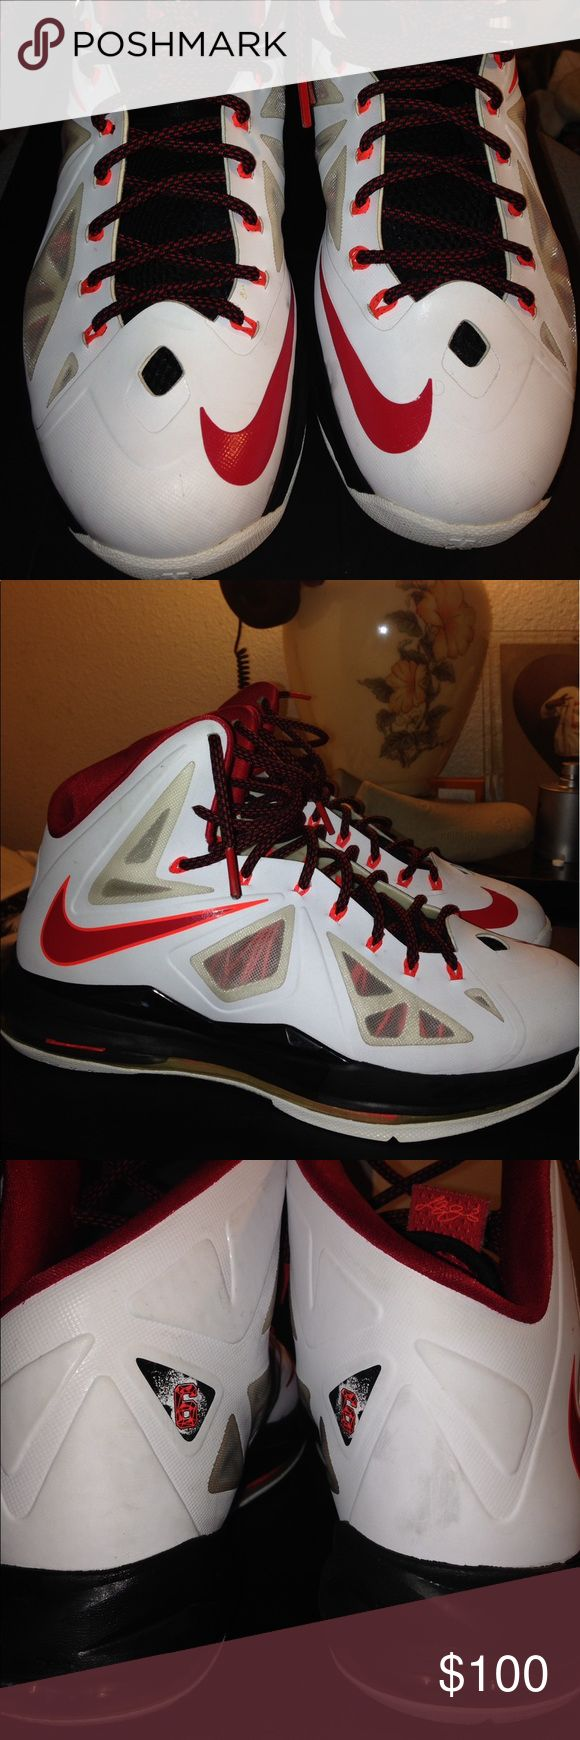 Lebron 10 Home Edition Good Condition Plus They Are 4 Years Old Nike Shoes Sneakers